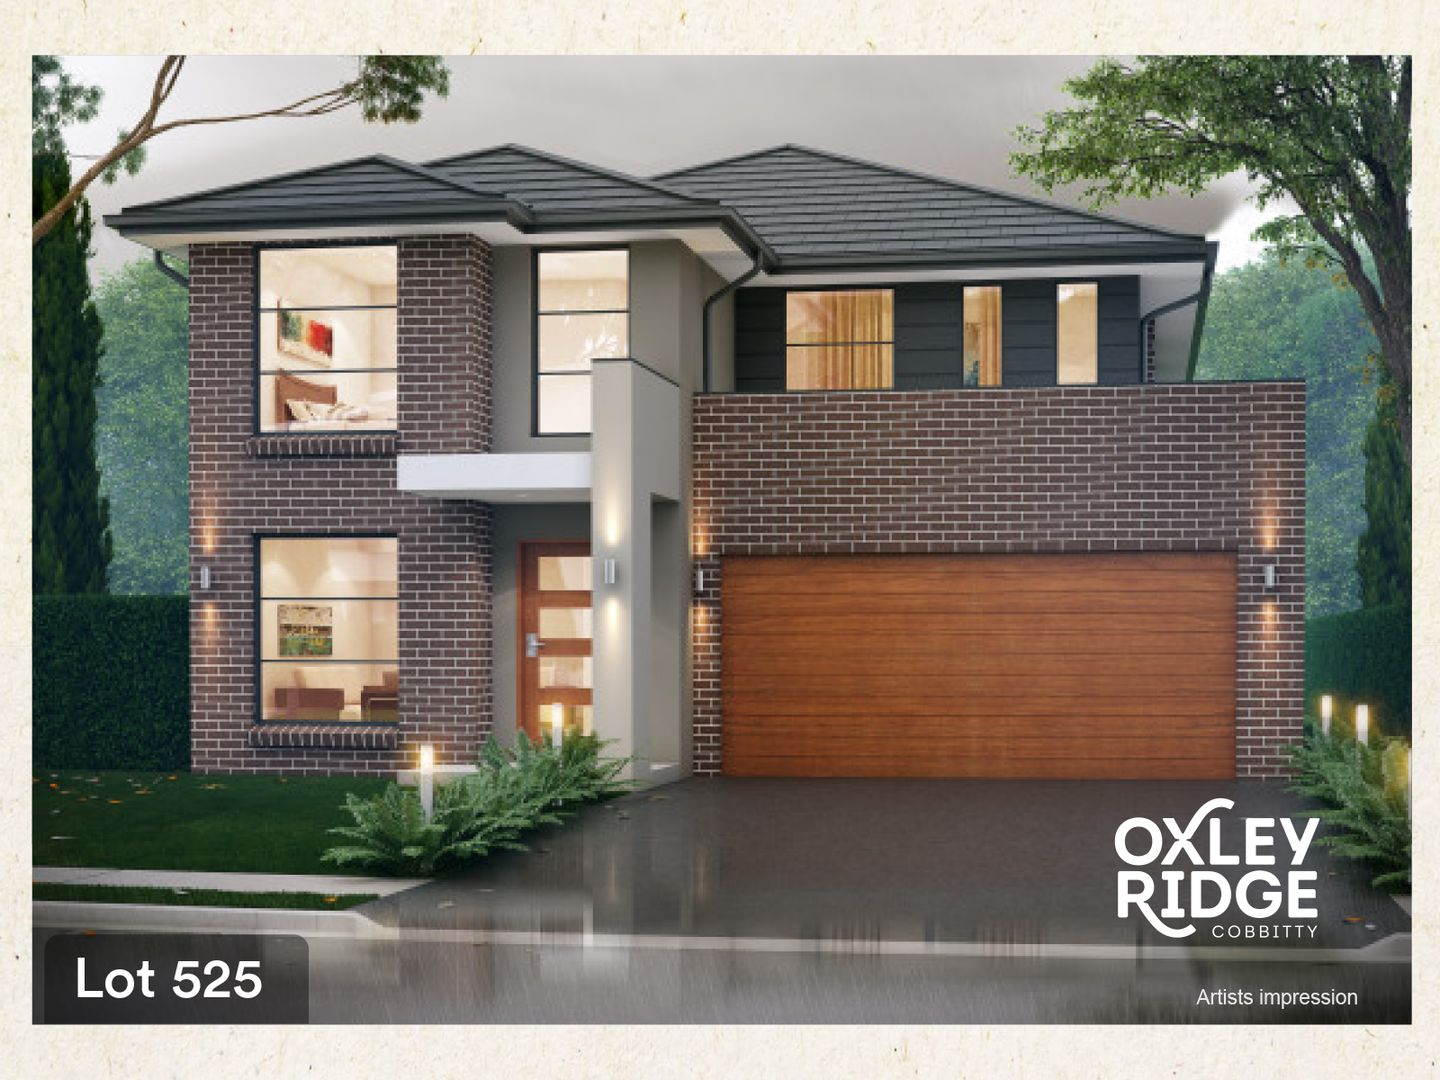 Lot 525 Oxley Ridge, Cobbitty NSW 2570, Image 0